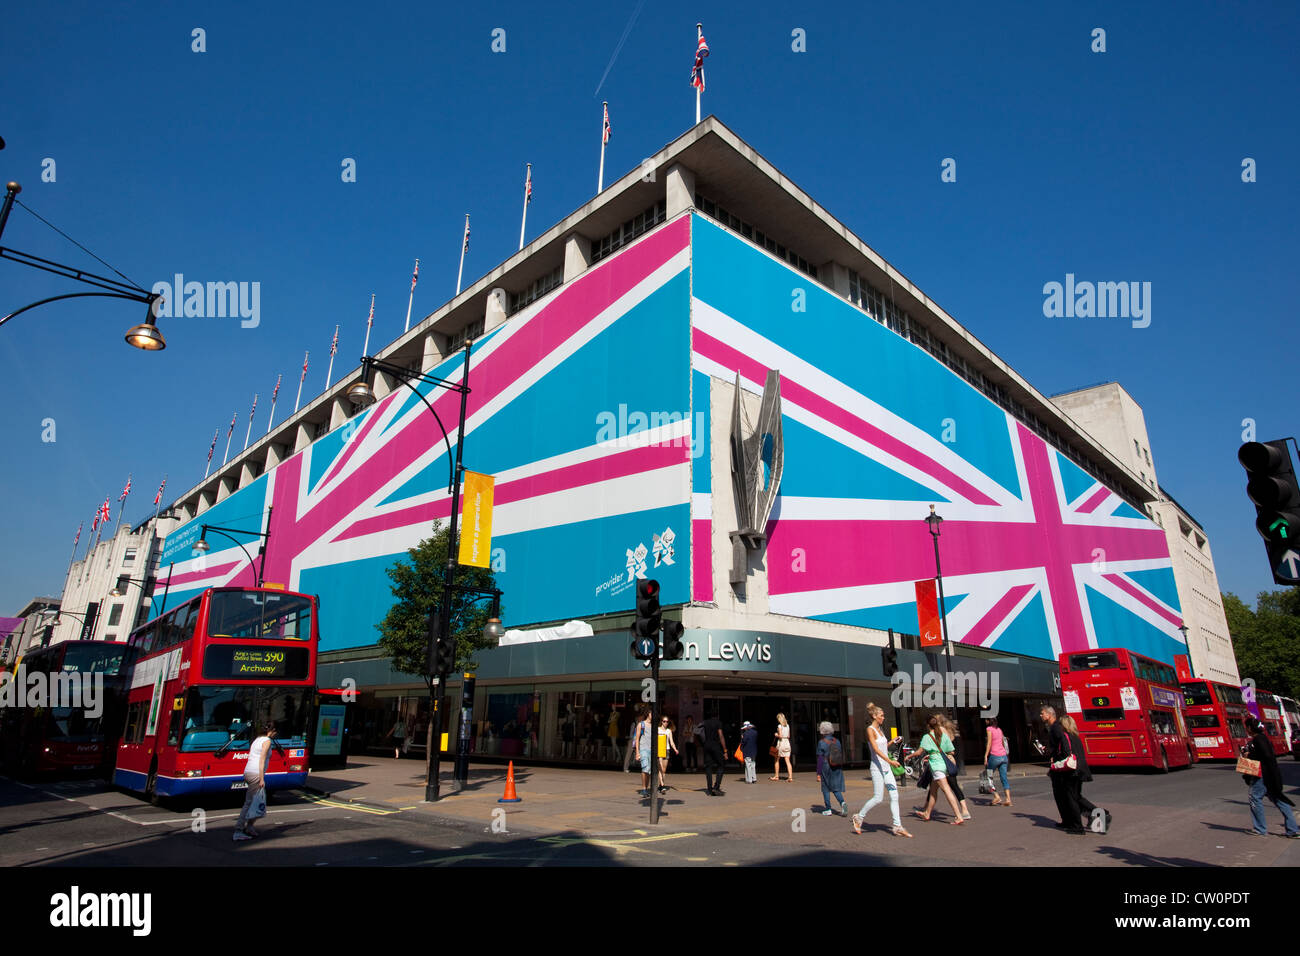 John Lewis flagship department store exterior wrapped with Union Jack to celebrate London Olympics, Oxford Street, - Stock Image